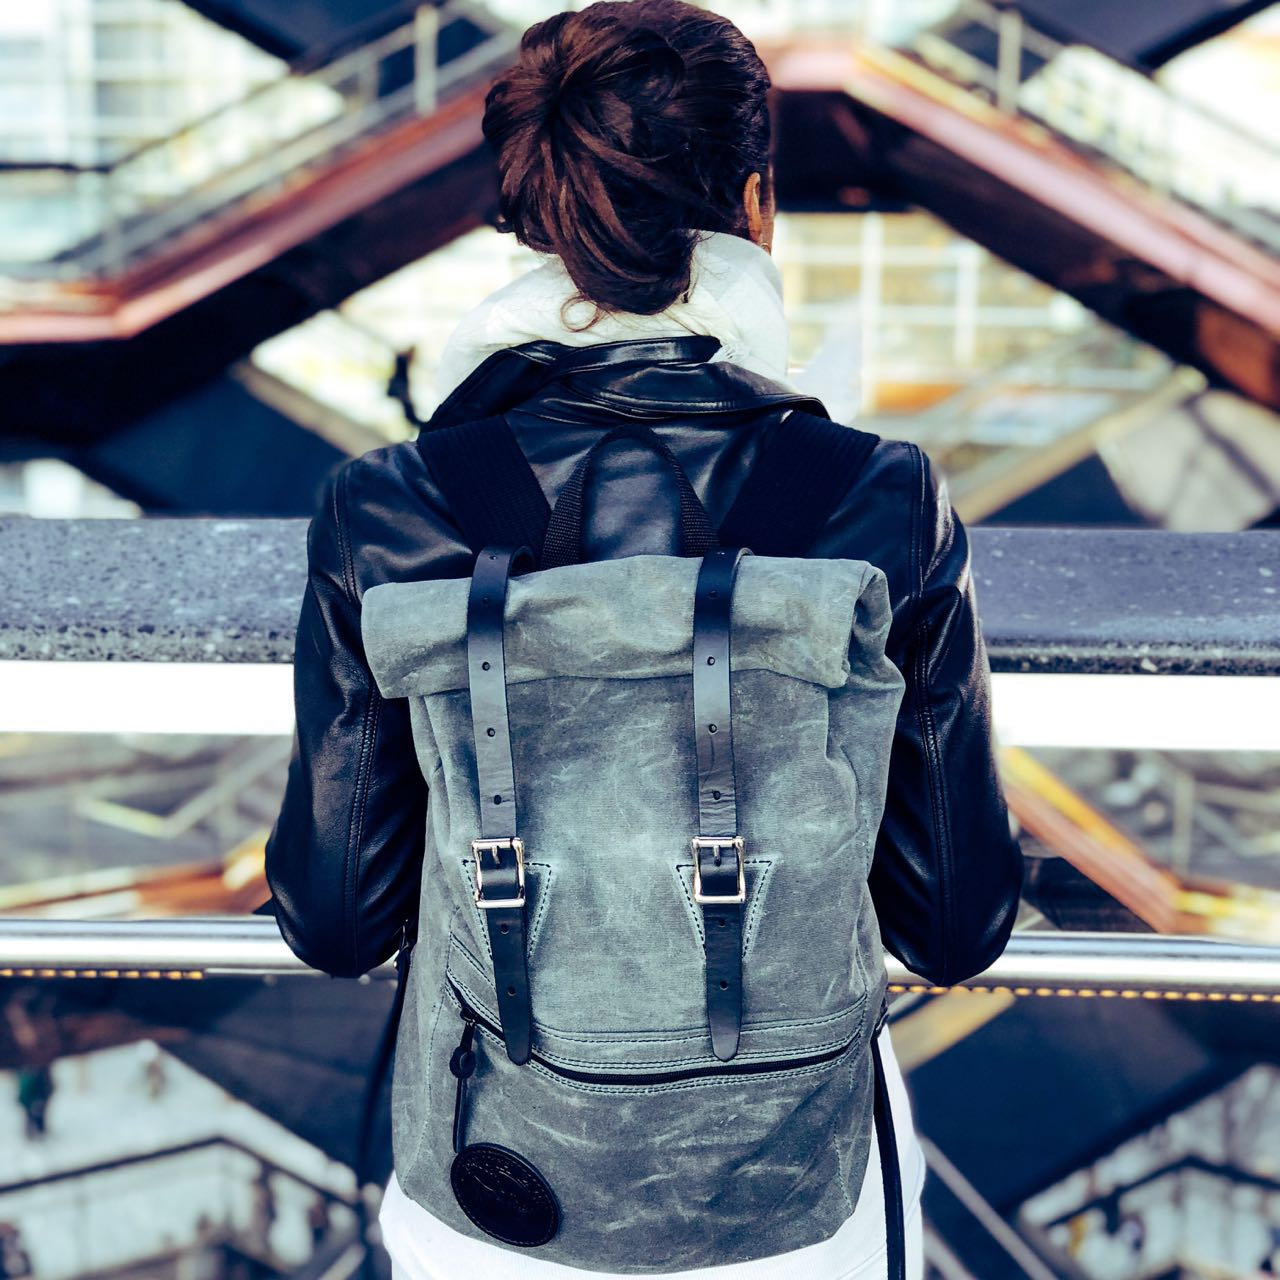 Duluth Pack Offers The Best Bags For Work & Play